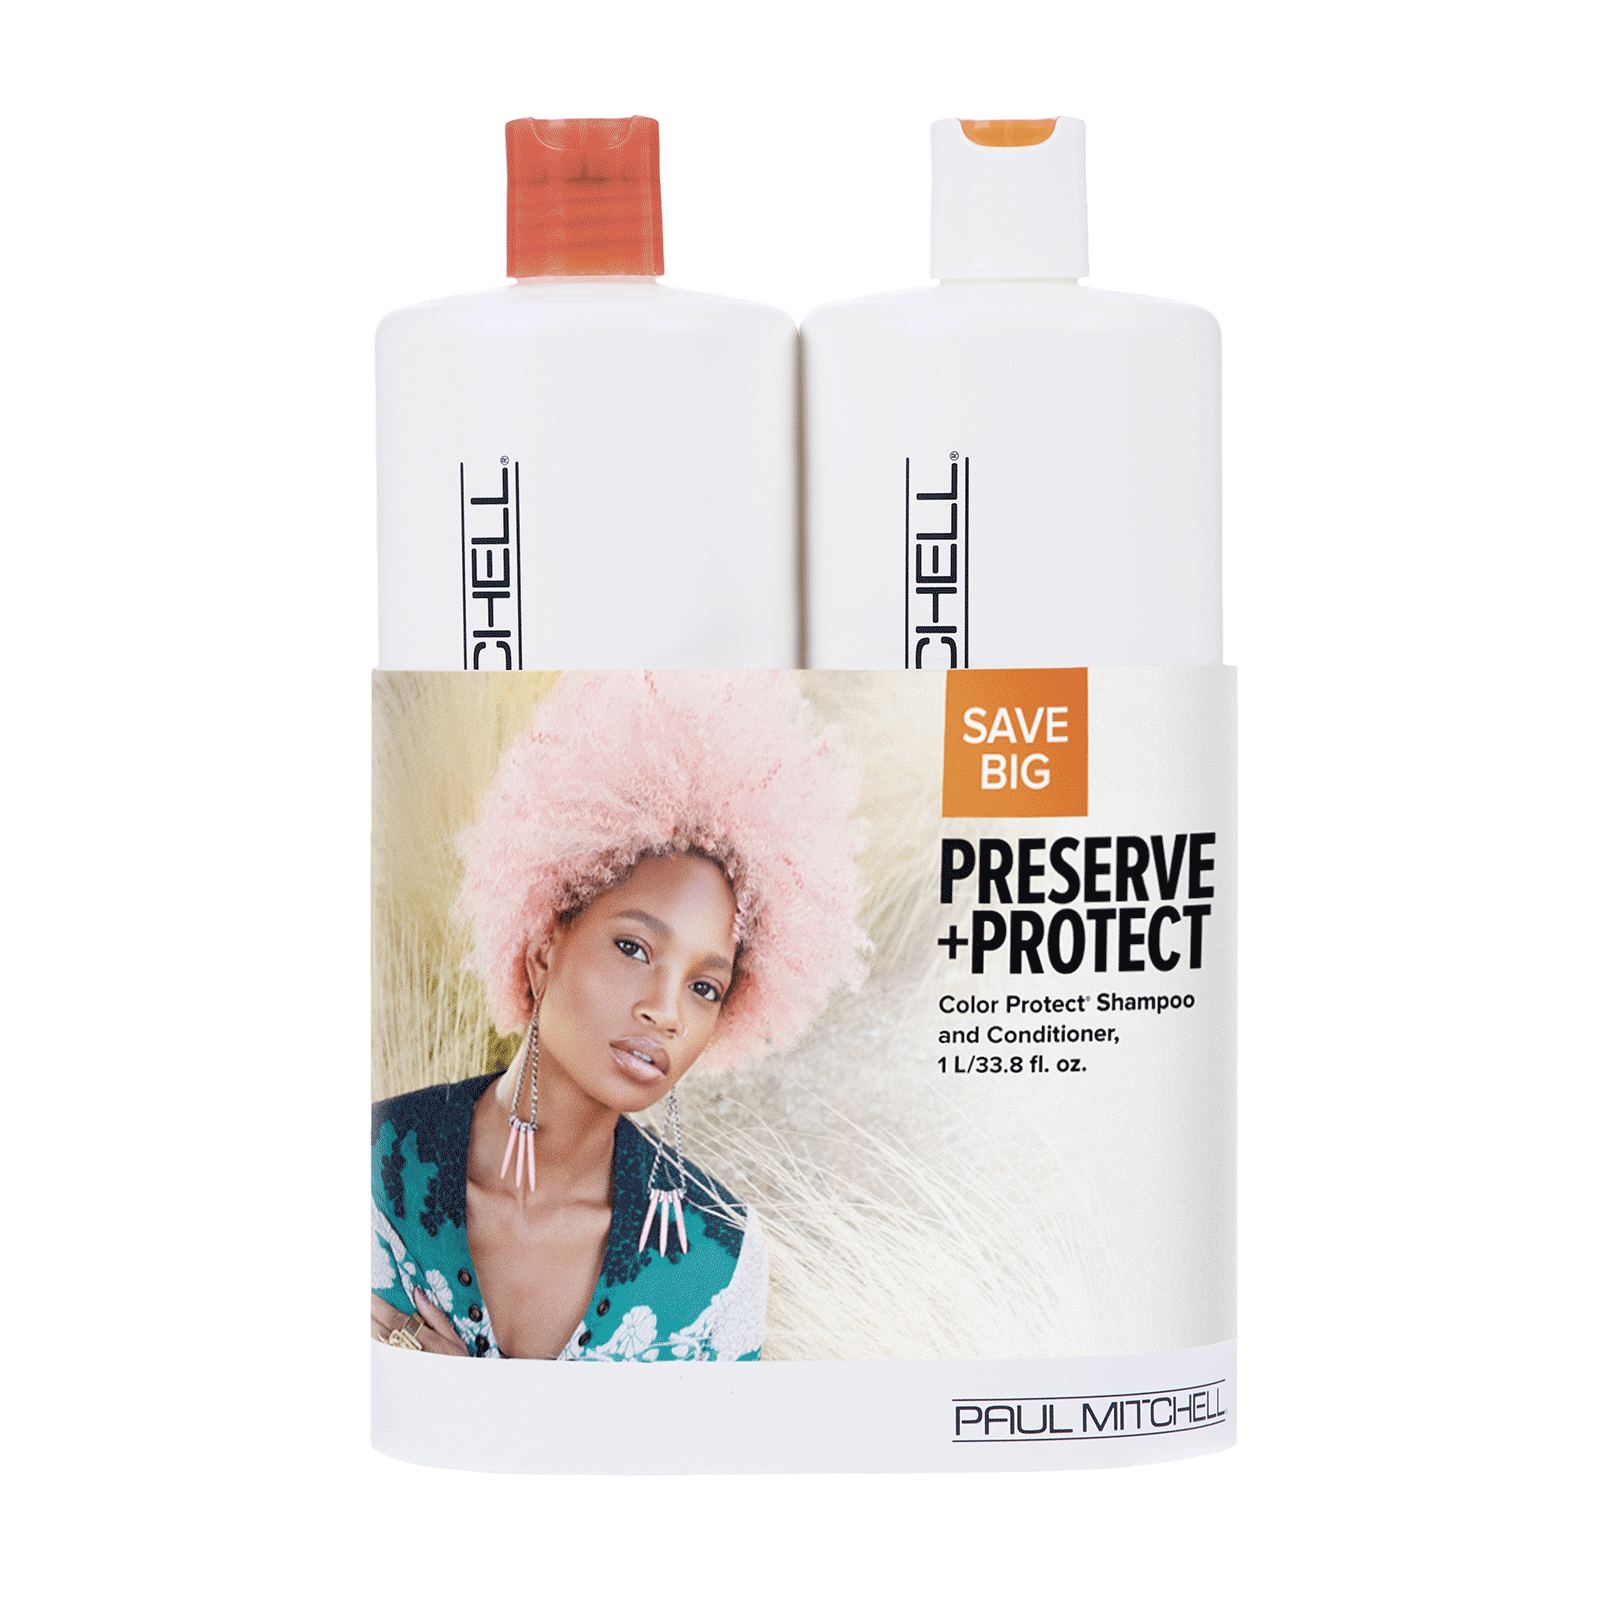 Color Protect Shampoo, Conditioner Liter Duo